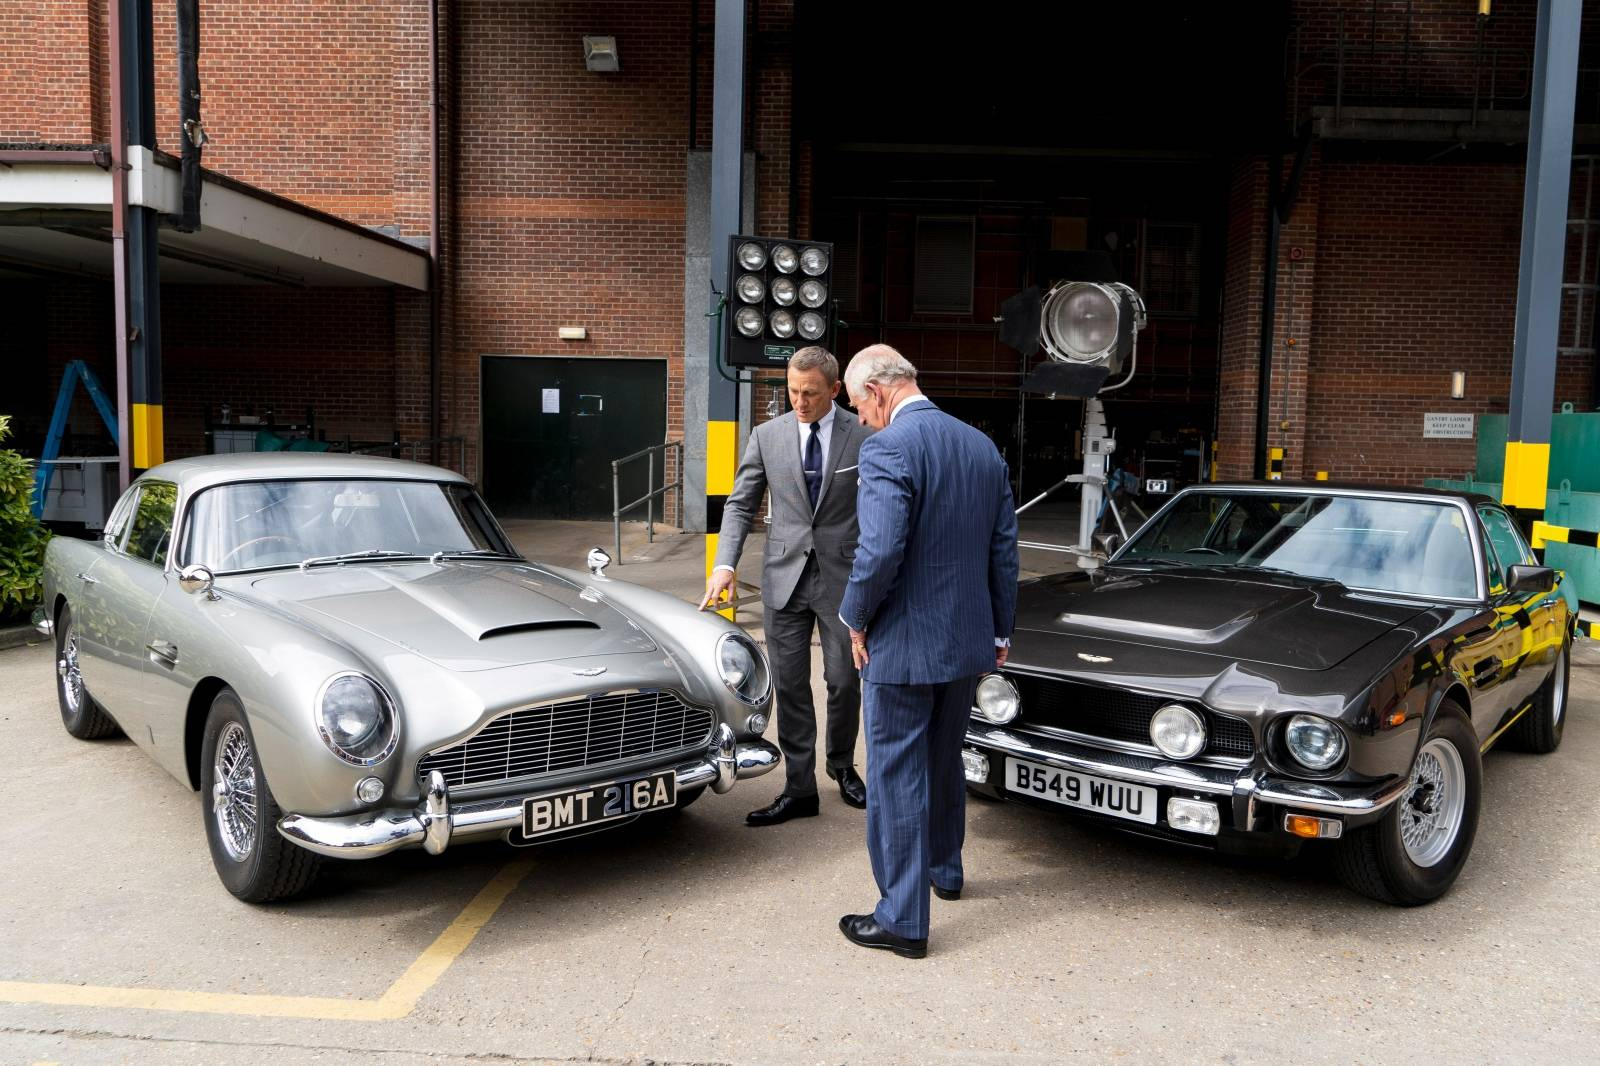 Prince Charles visits the set of James Bond at Pinewood Studios